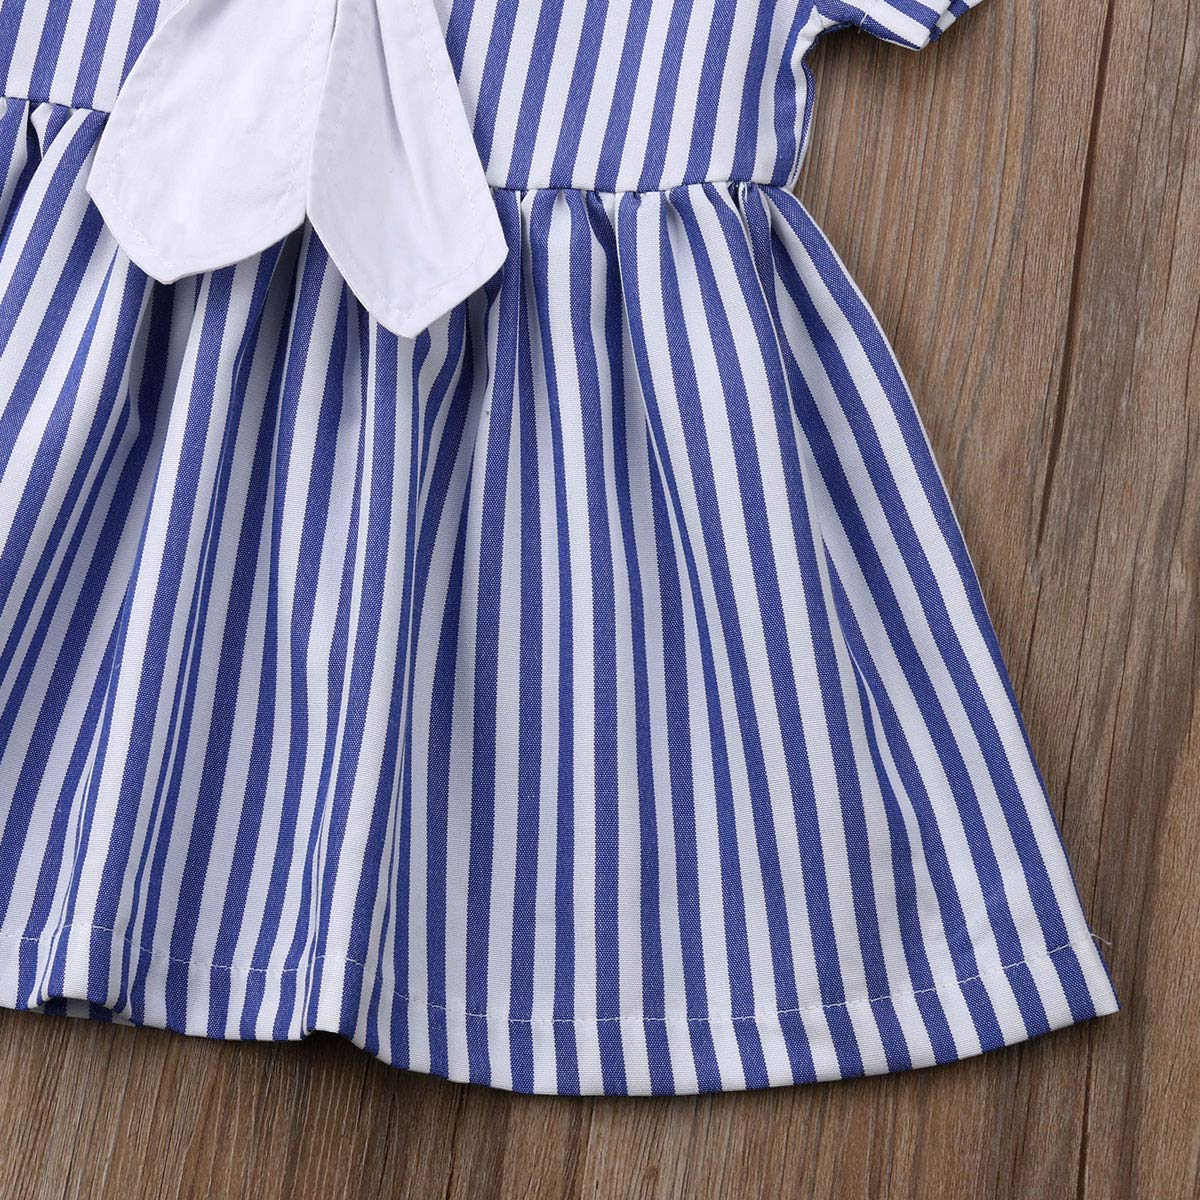 Infant Baby Toddler Girls Bowknot Sailor Stripe Marine Navy Dress Onesie Outfit